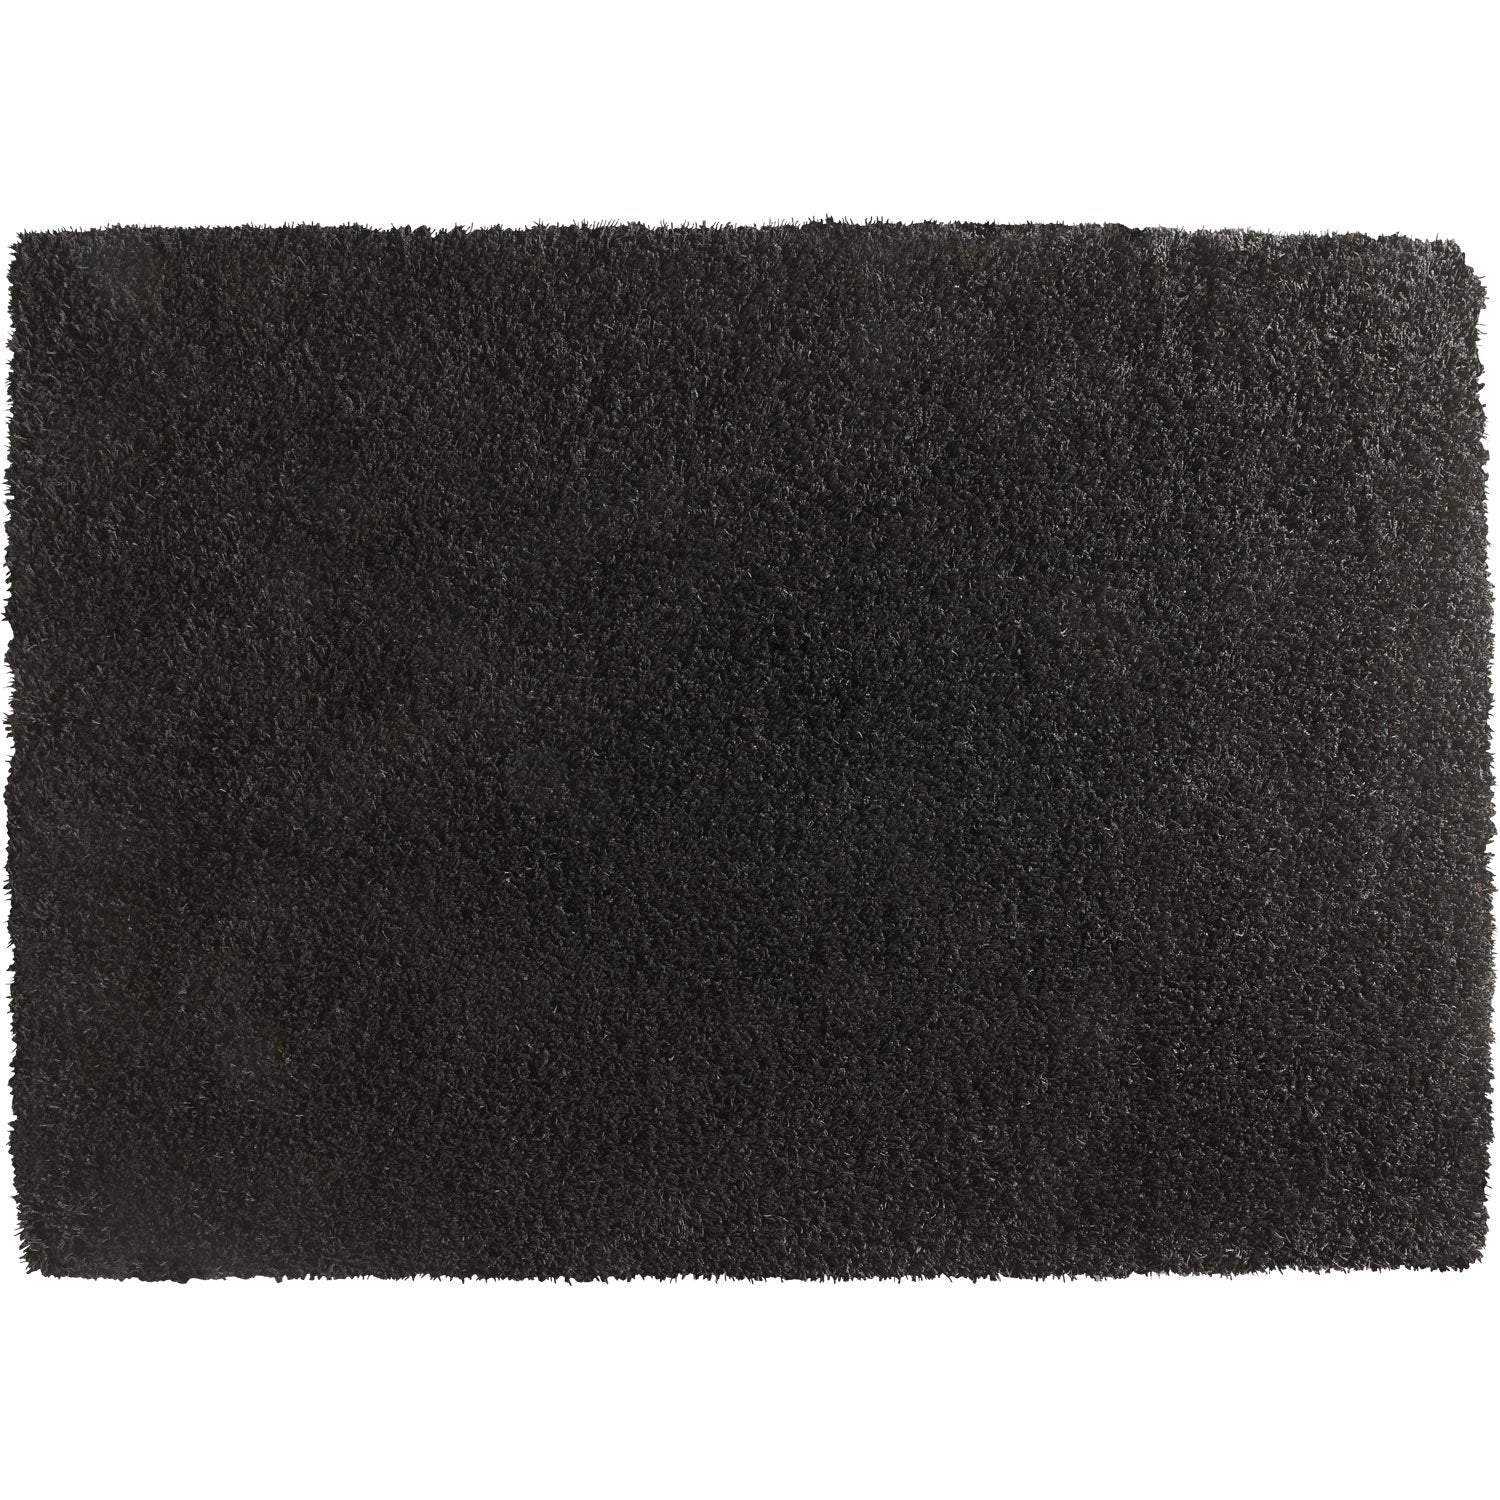 tapis gris shaggy cubic x cm leroy merlin. Black Bedroom Furniture Sets. Home Design Ideas